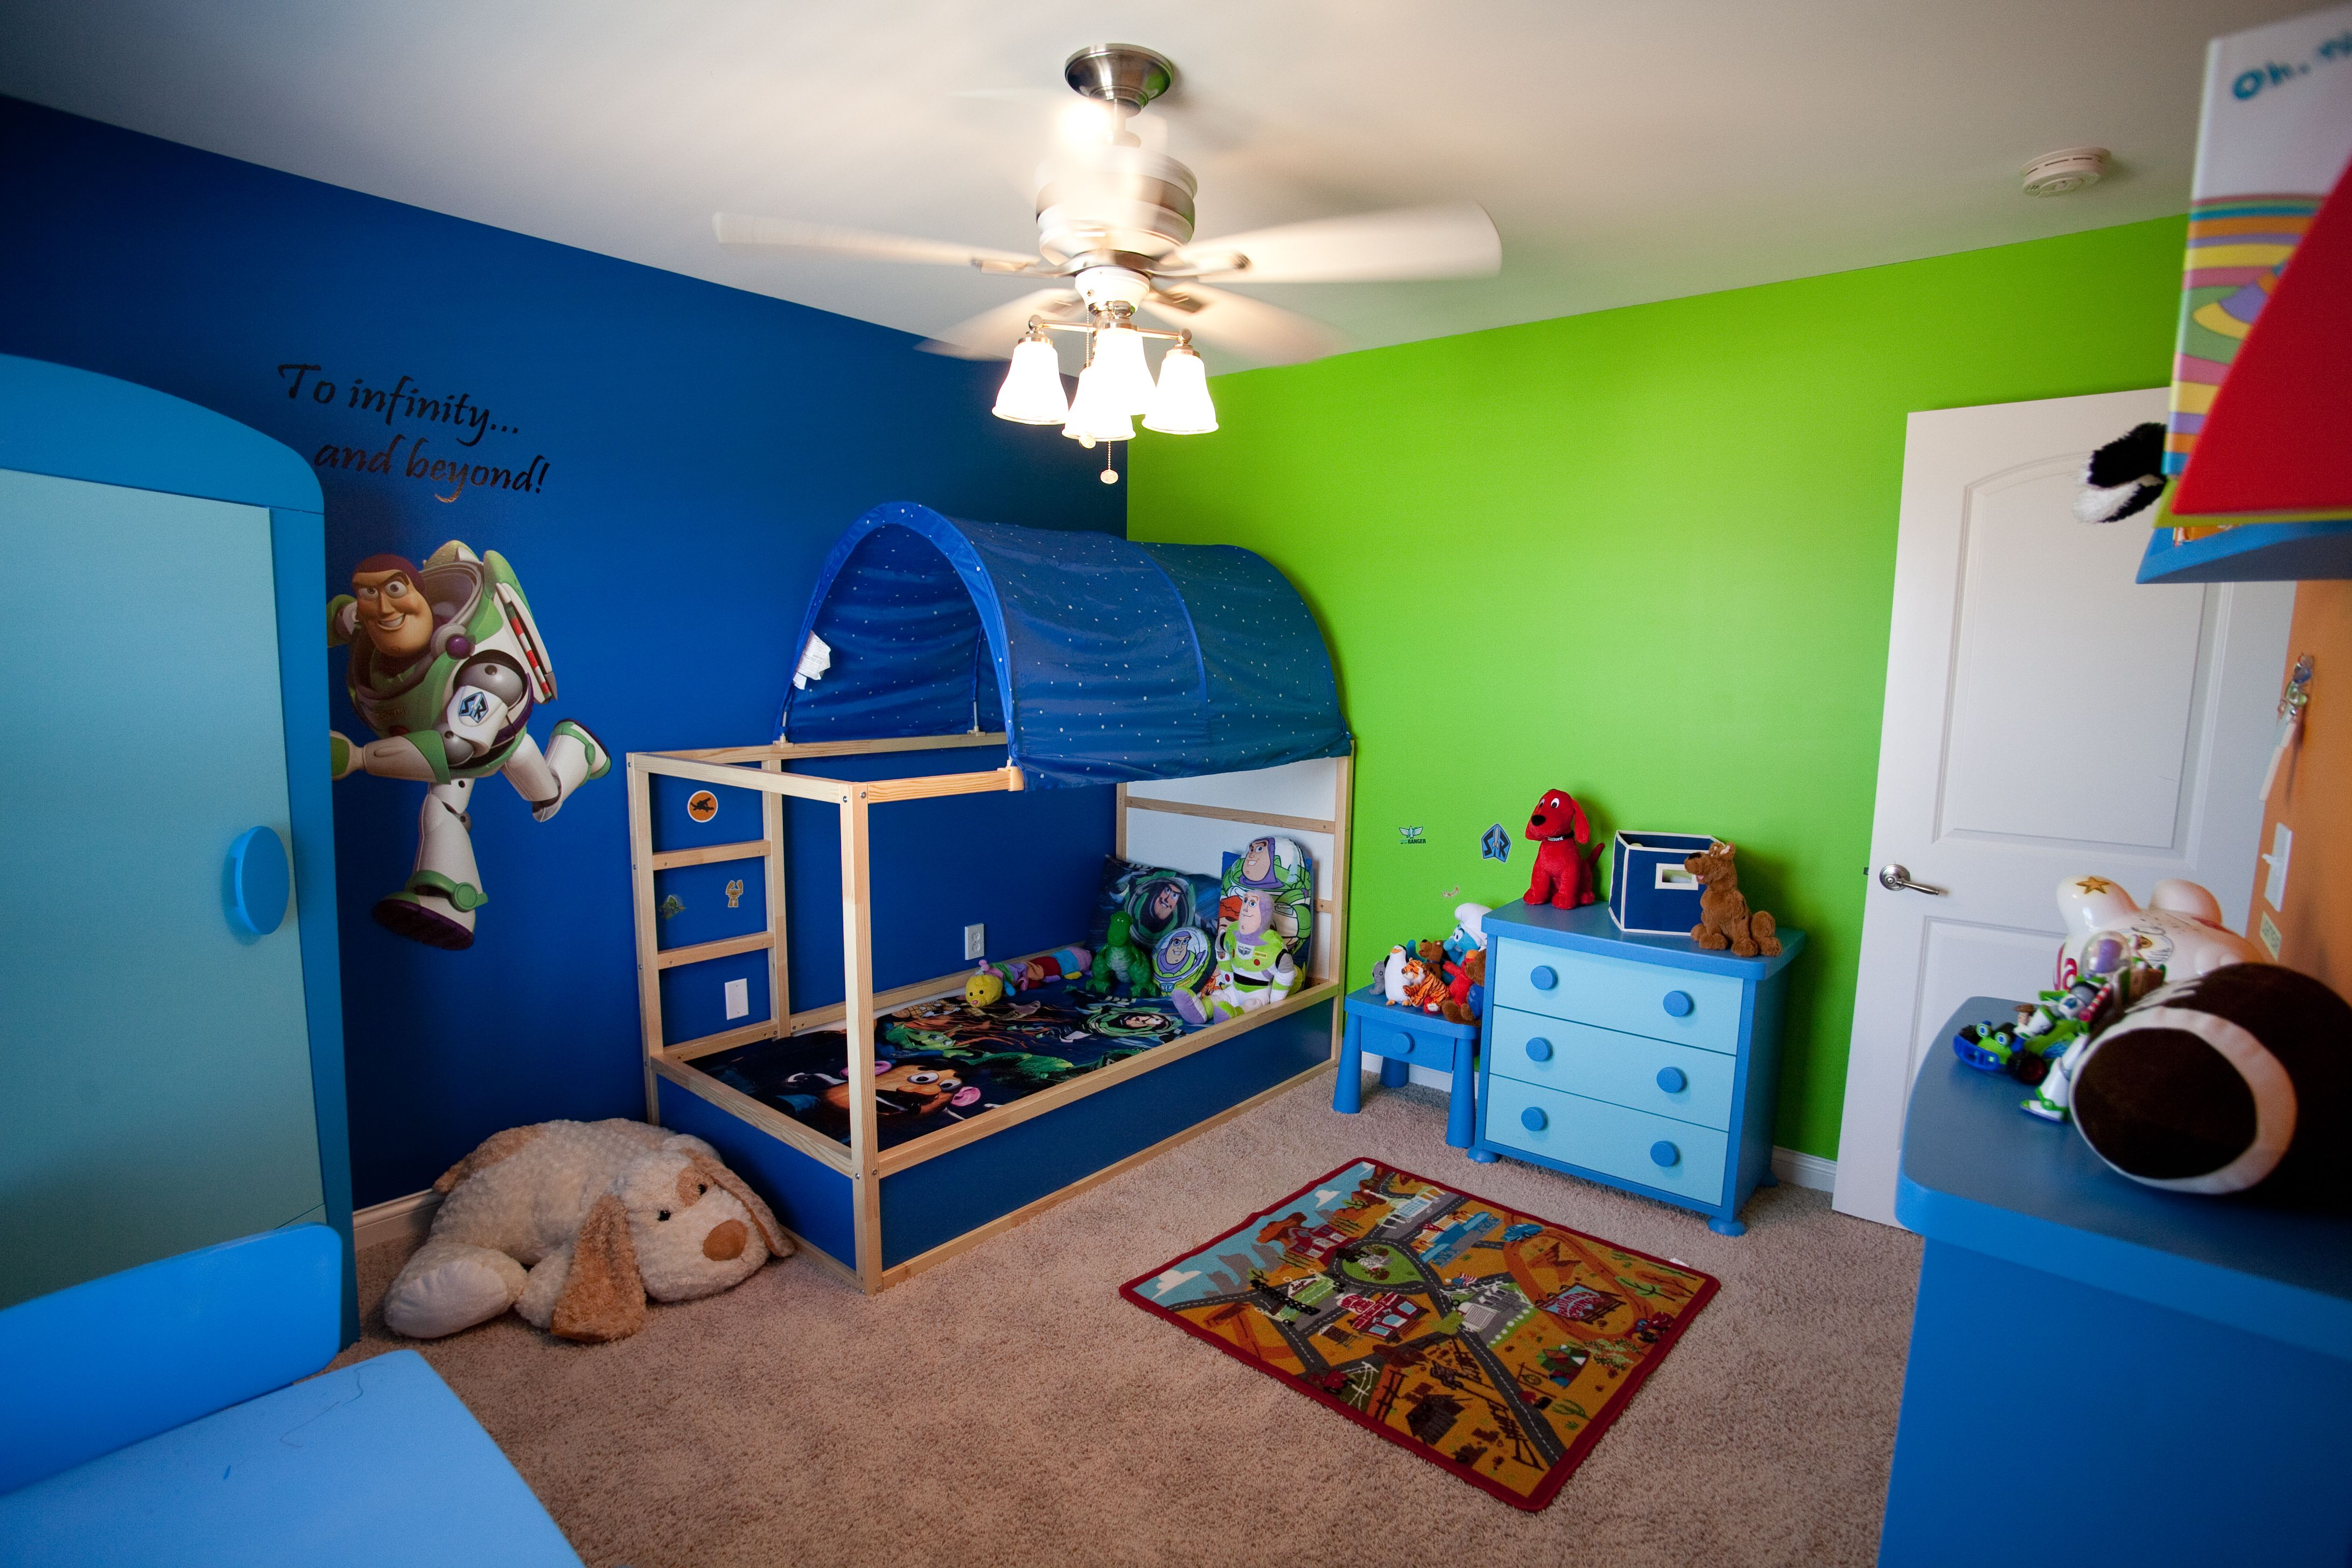 Toy story toddler bedroom boy 39 s bedroom ideas Colors for toddler boy room